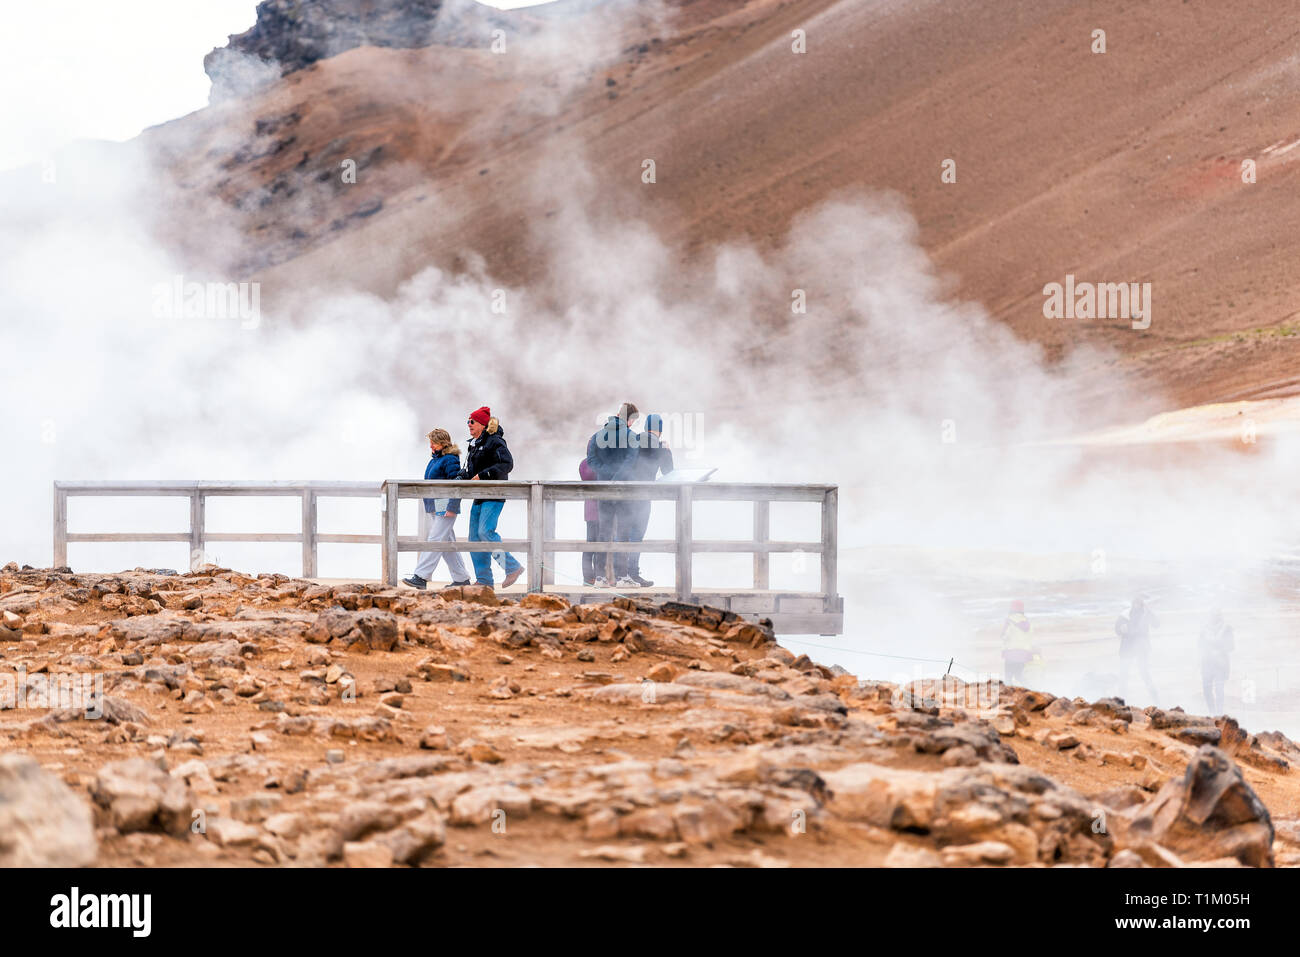 Hverir, Iceland - June 16, 2018: Hot steam vapor with people tourists looking at springs on wooden platform overlook covered in mist fog geyser in geo - Stock Image